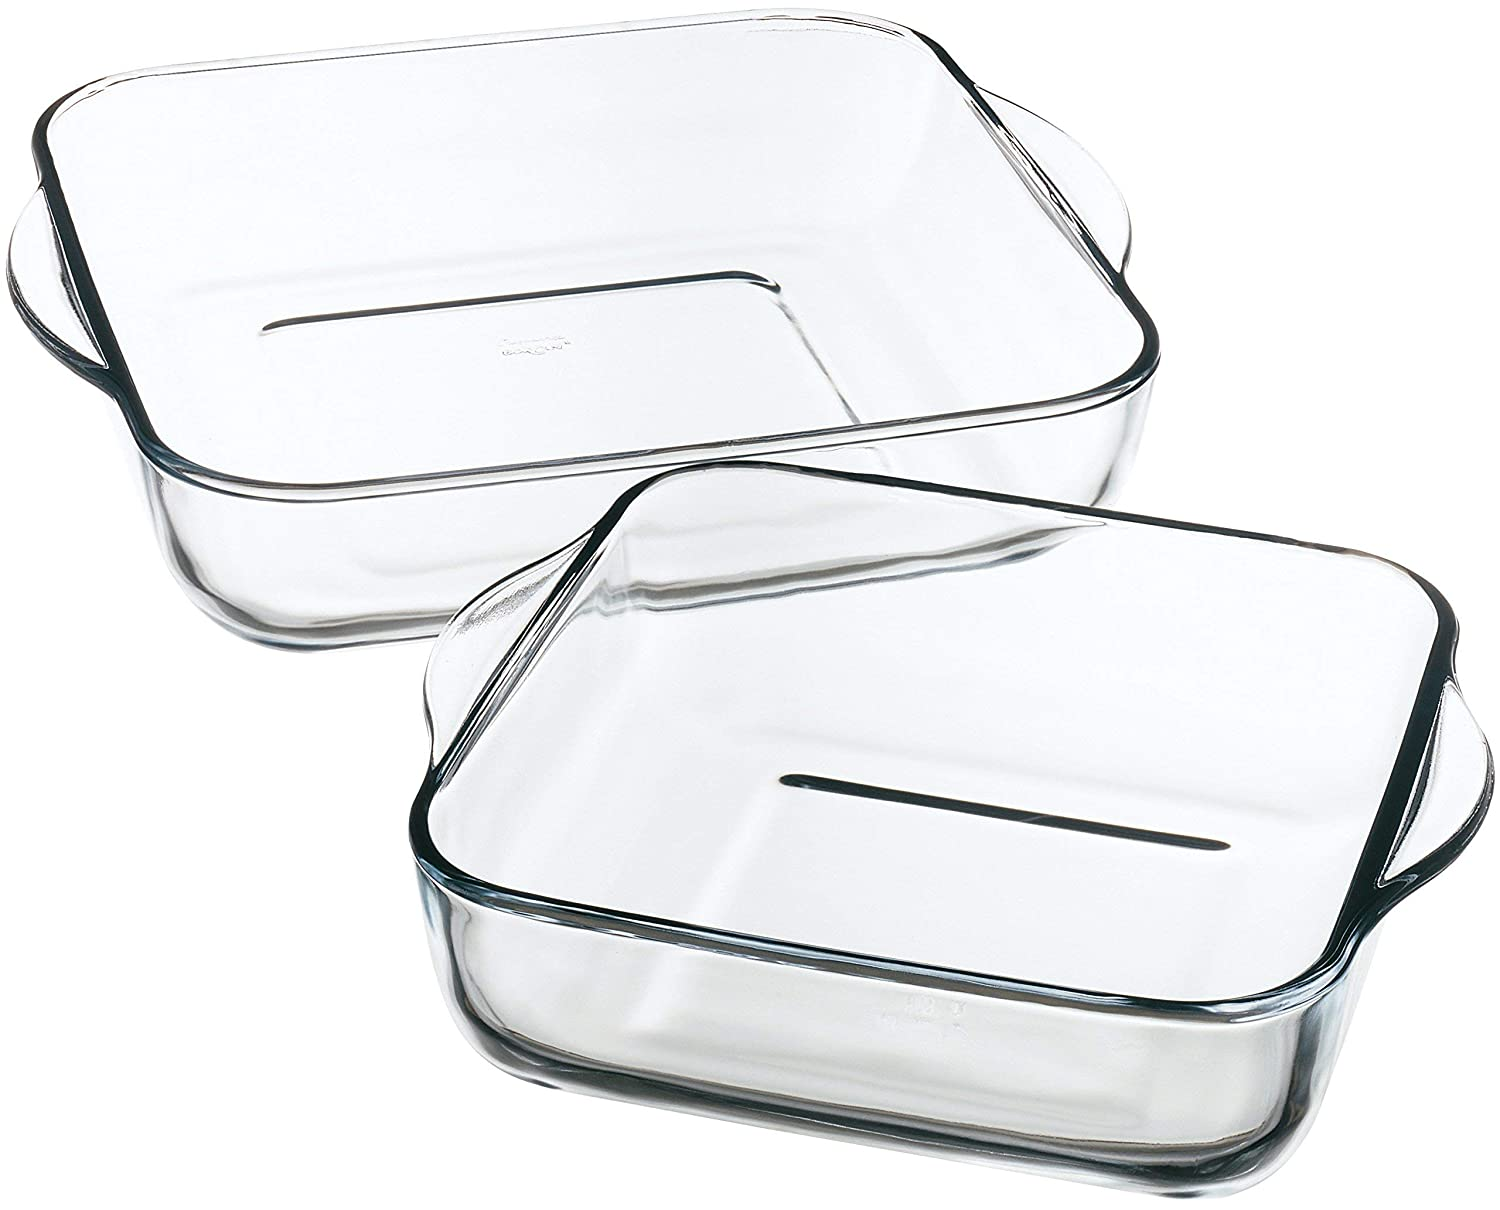 Amazon.com: Borcam 1690037 Care Baking Dishes Set of 2 Clear Glass ...